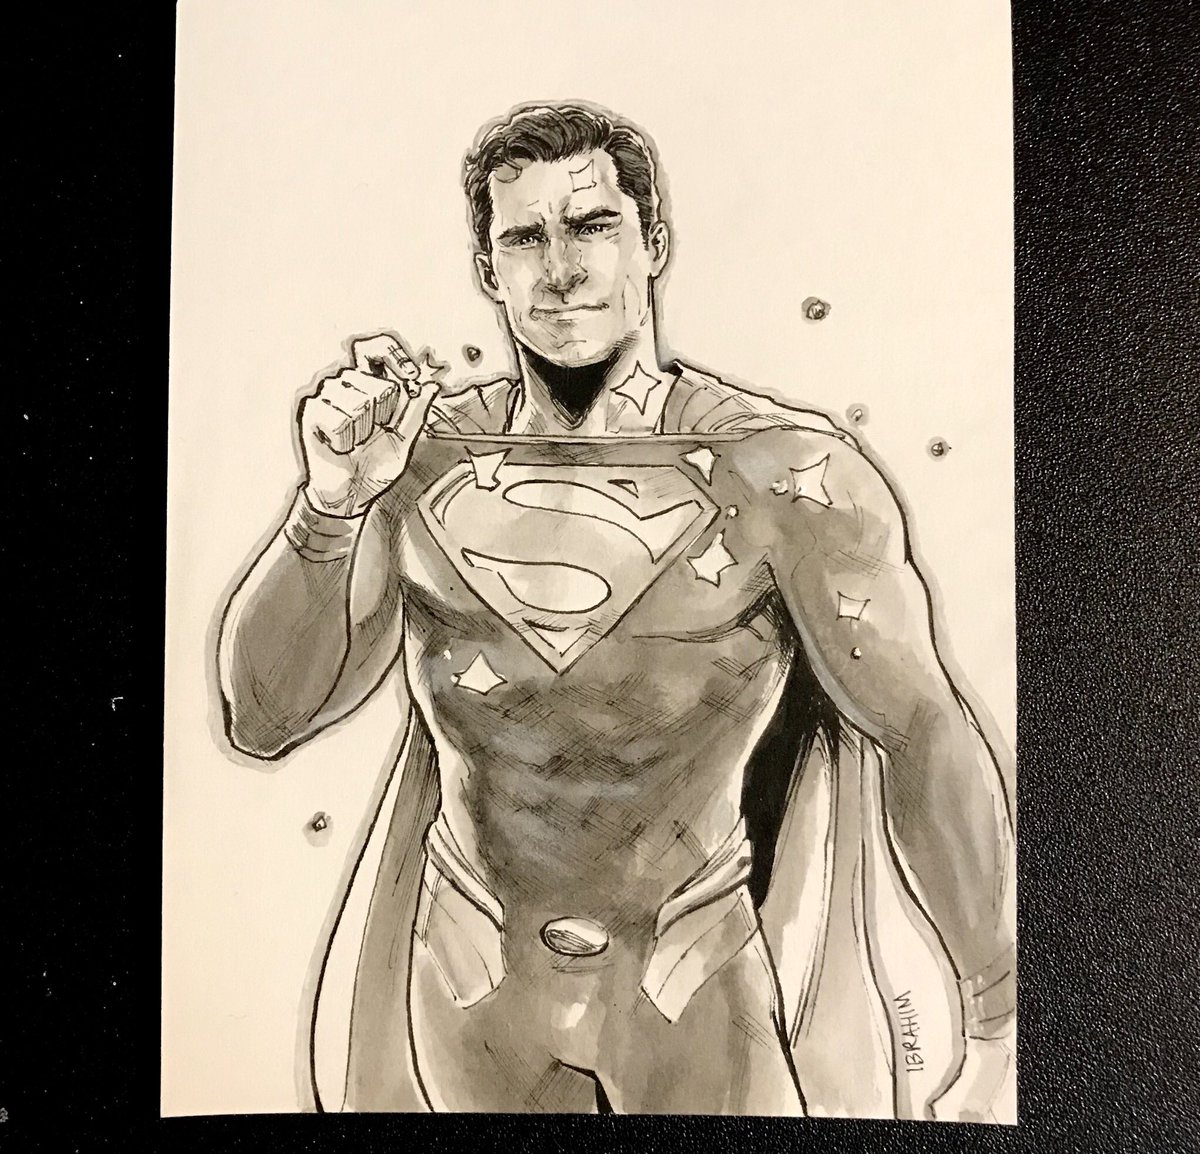 Today's #Kryptober drawing: when they know you're bulletproof, but they try it anyway.